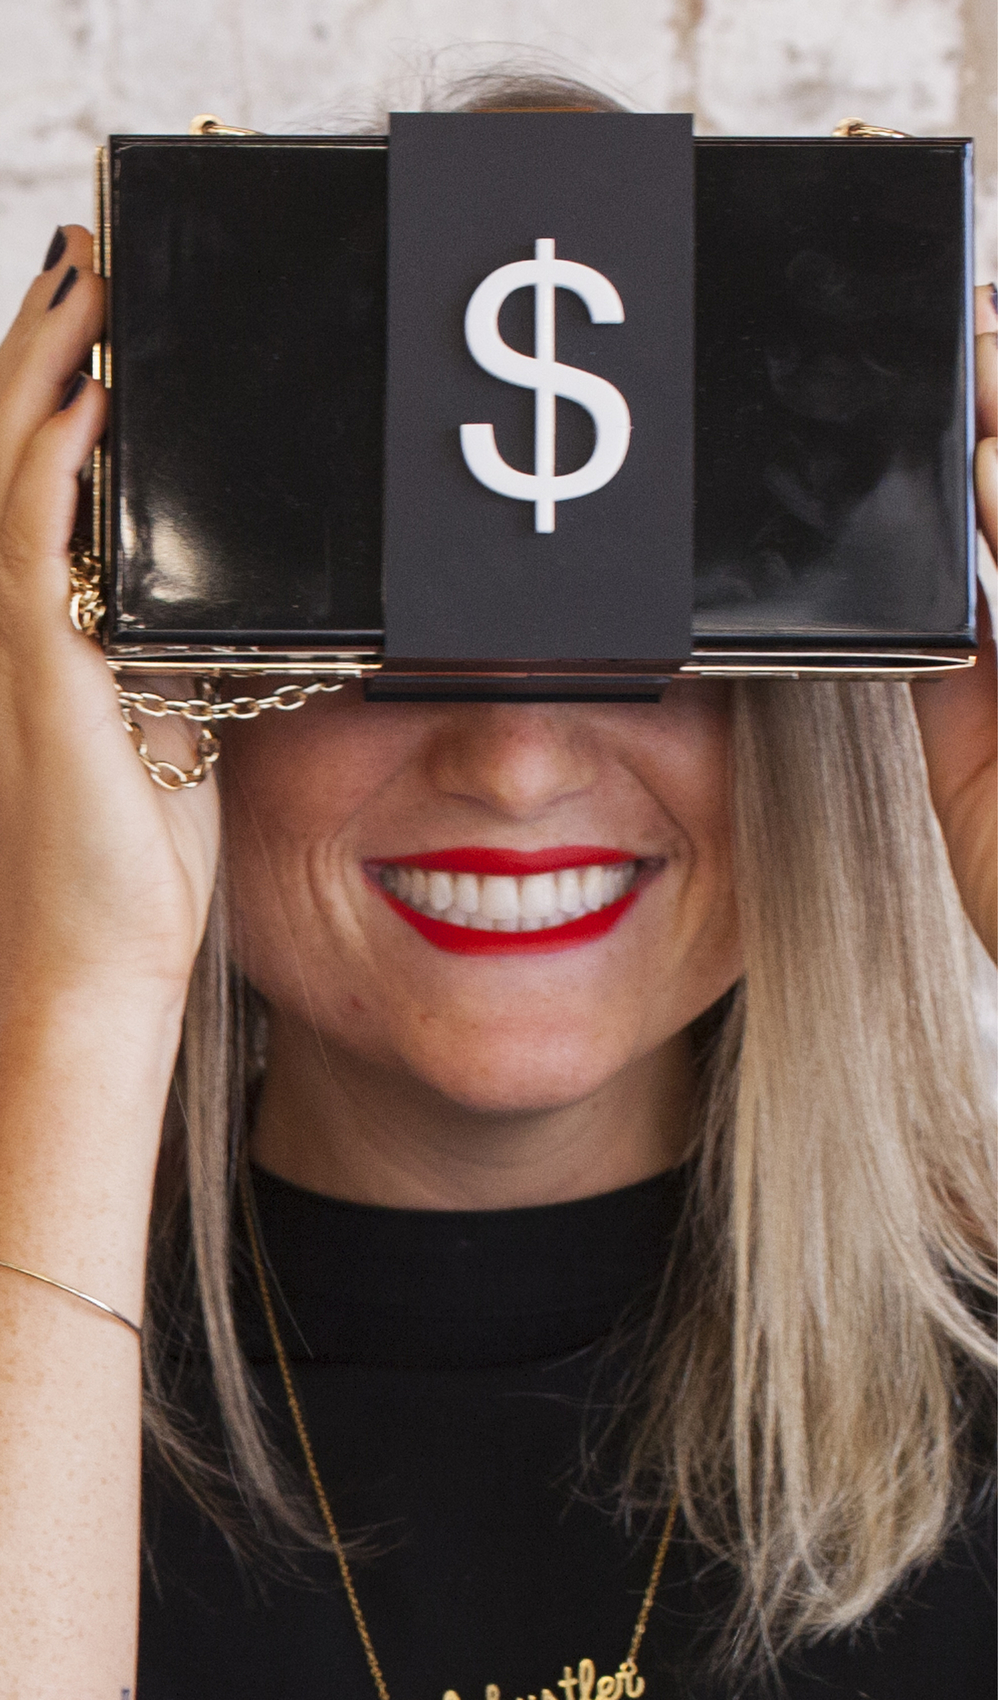 Katie Corcoran modeling the Money Bag in the Two Eggs Slow n' Steady lookbook. Photo by Higor Bastos.